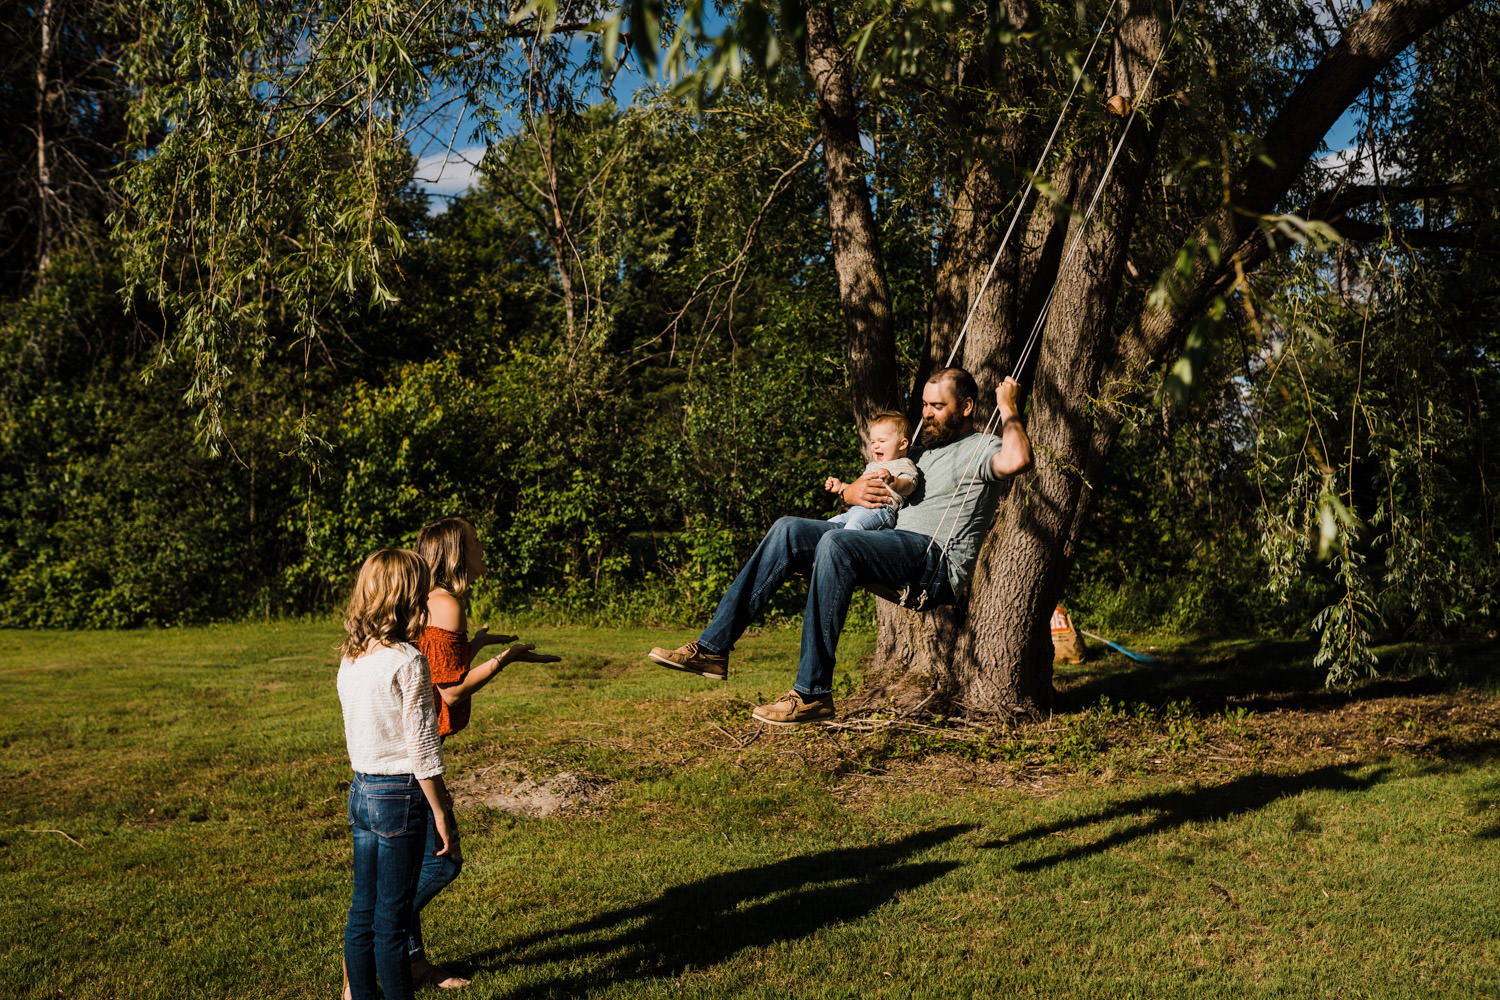 family plays on rope swing in backyard - ottawa lifestyle family photos